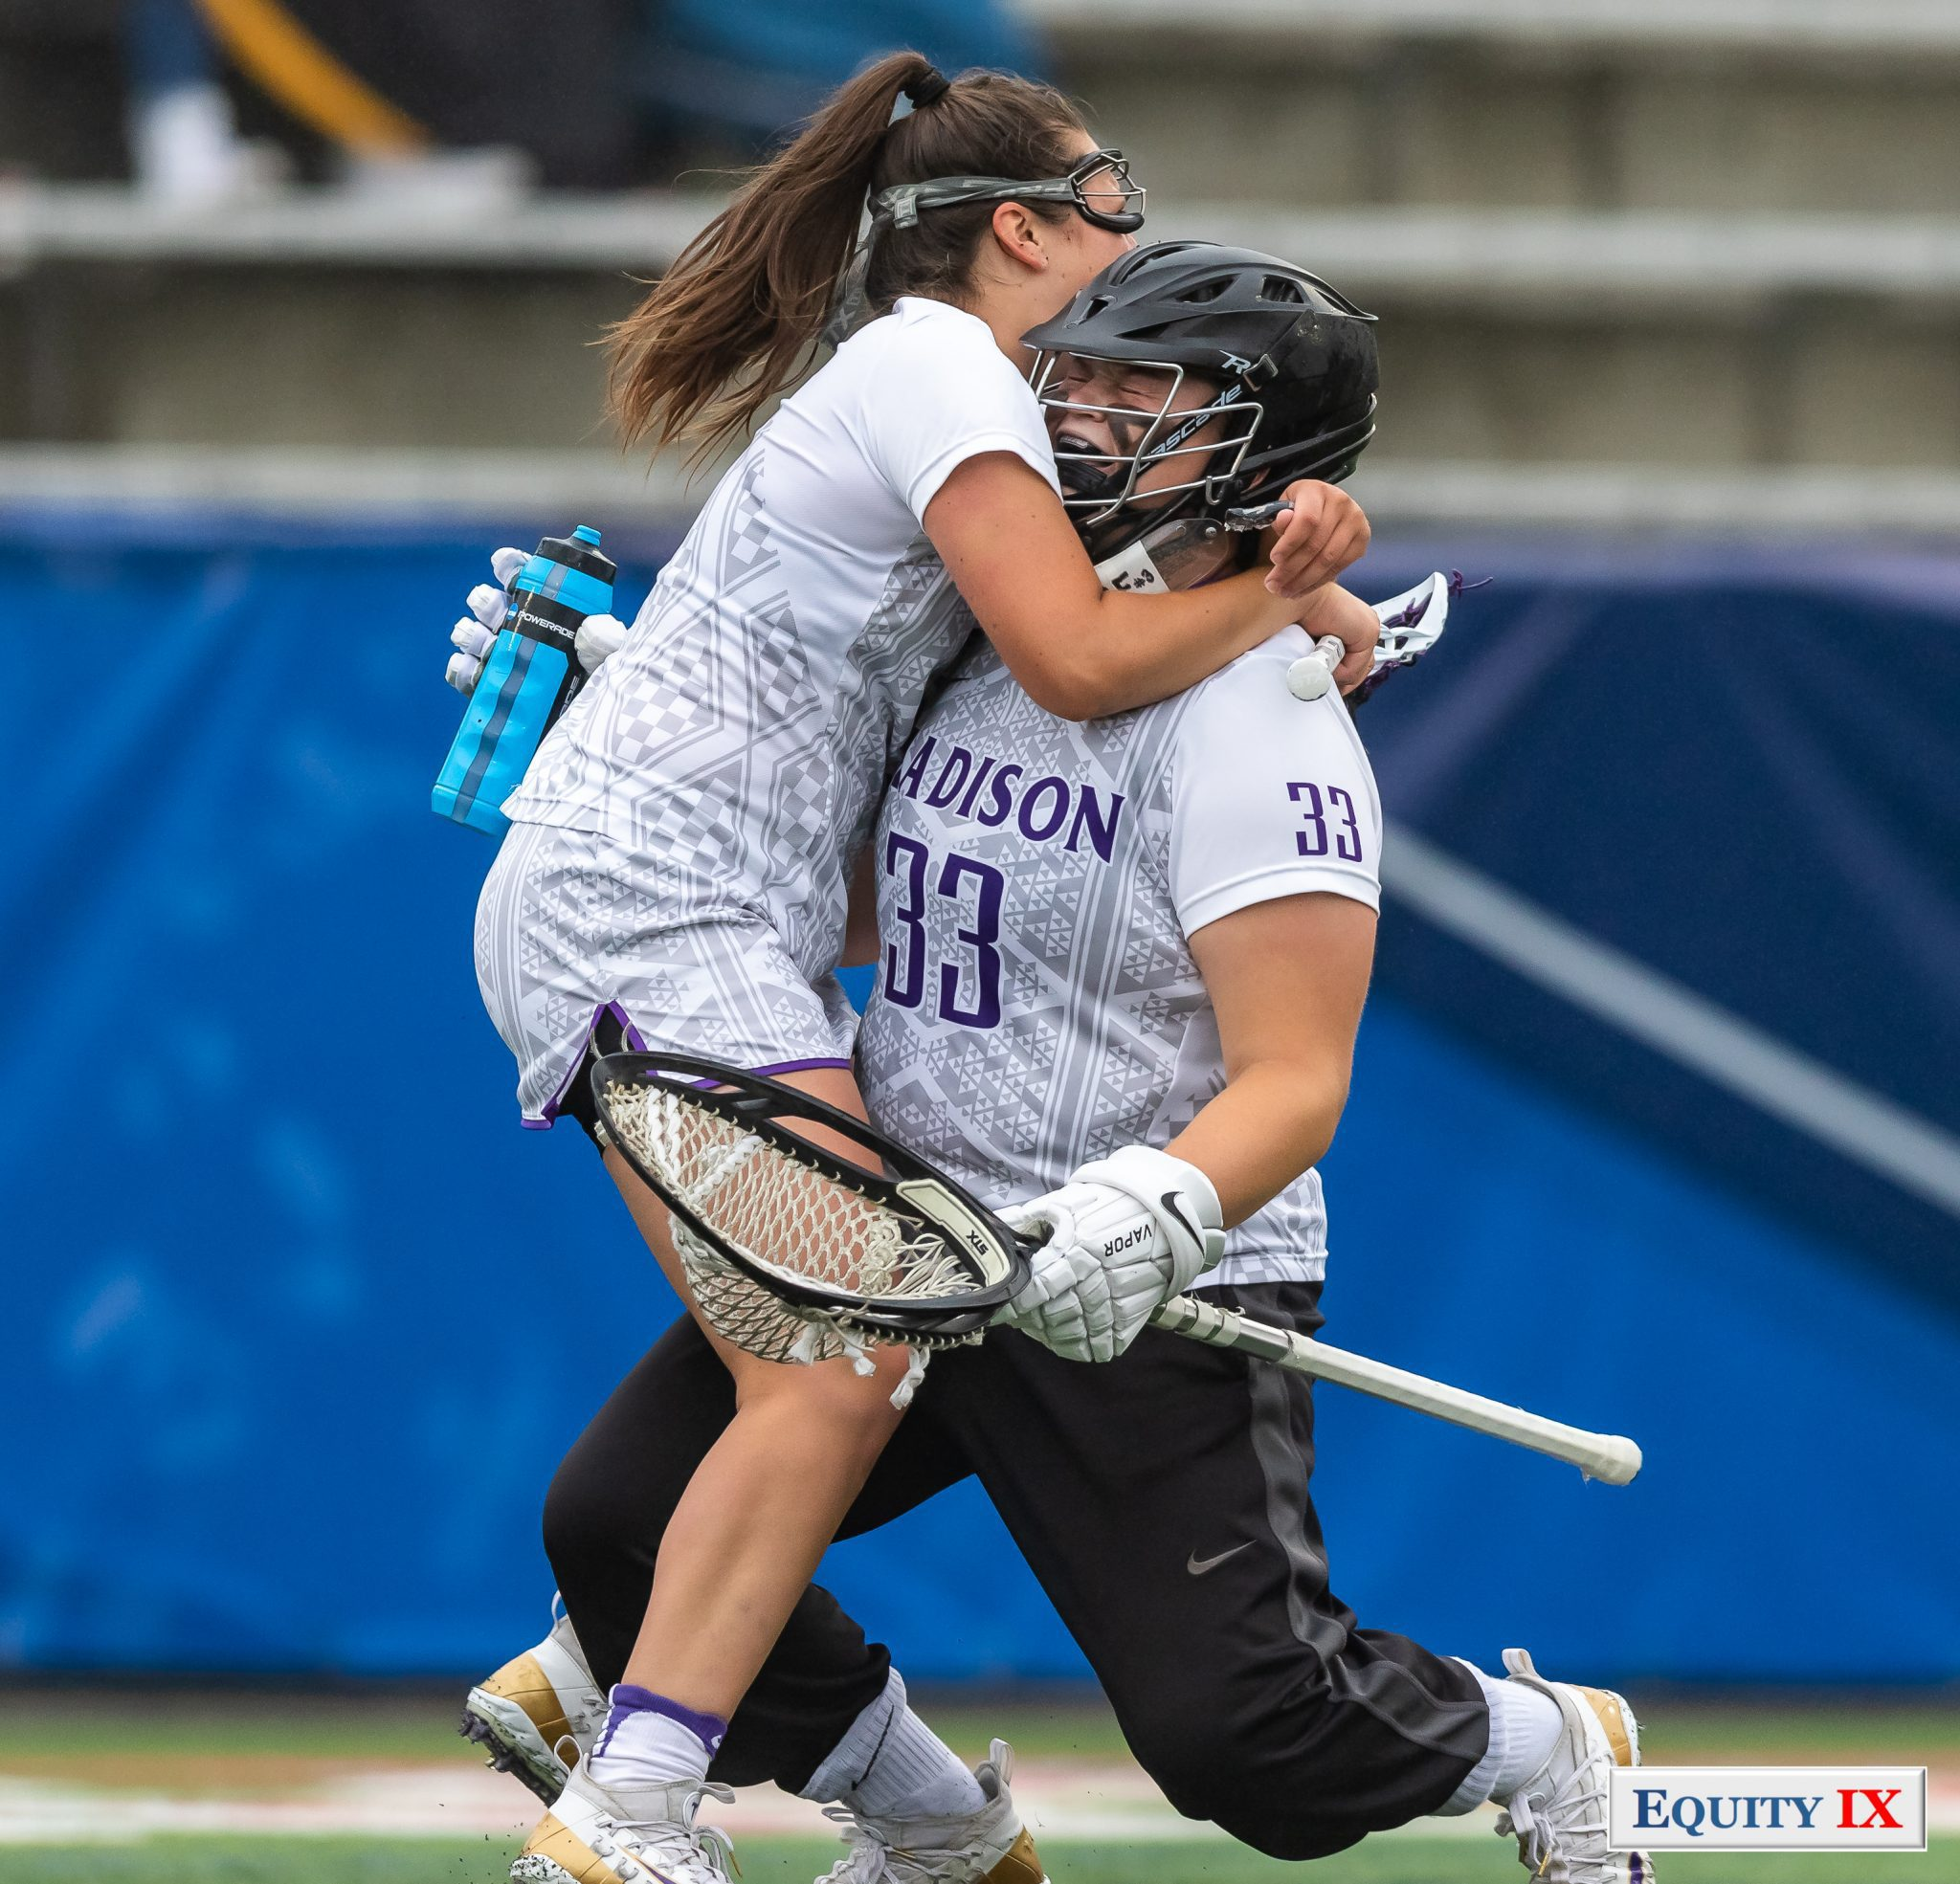 Molly Dougherty (JMU Goalie #33) and Emma Johnson (JMU 31) celebrate by hugging after winning 2018 NCAA Women's Lacrosse Championship - Molly wearing a helmet and carrying oversized goalie stick and blue water bottle © Equity IX - SportsOgram - Leigh Ernst Friestedt